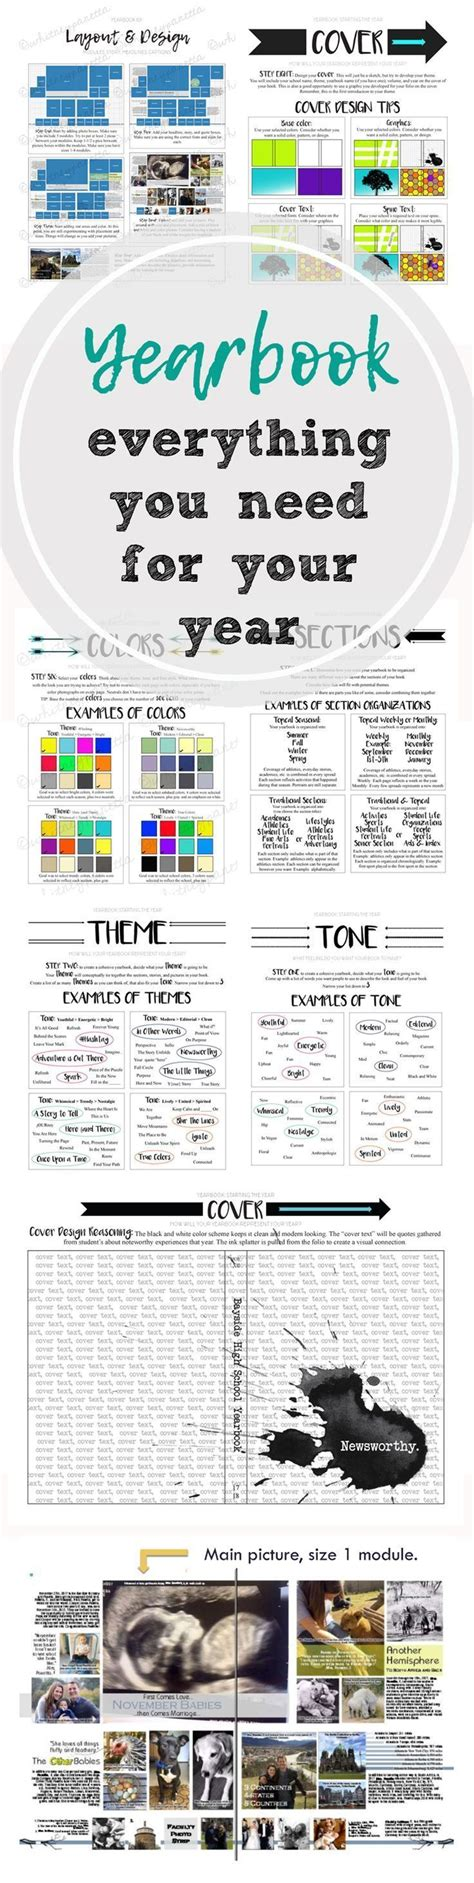 yearbook layout rubric best 25 yearbook theme ideas on pinterest yearbook